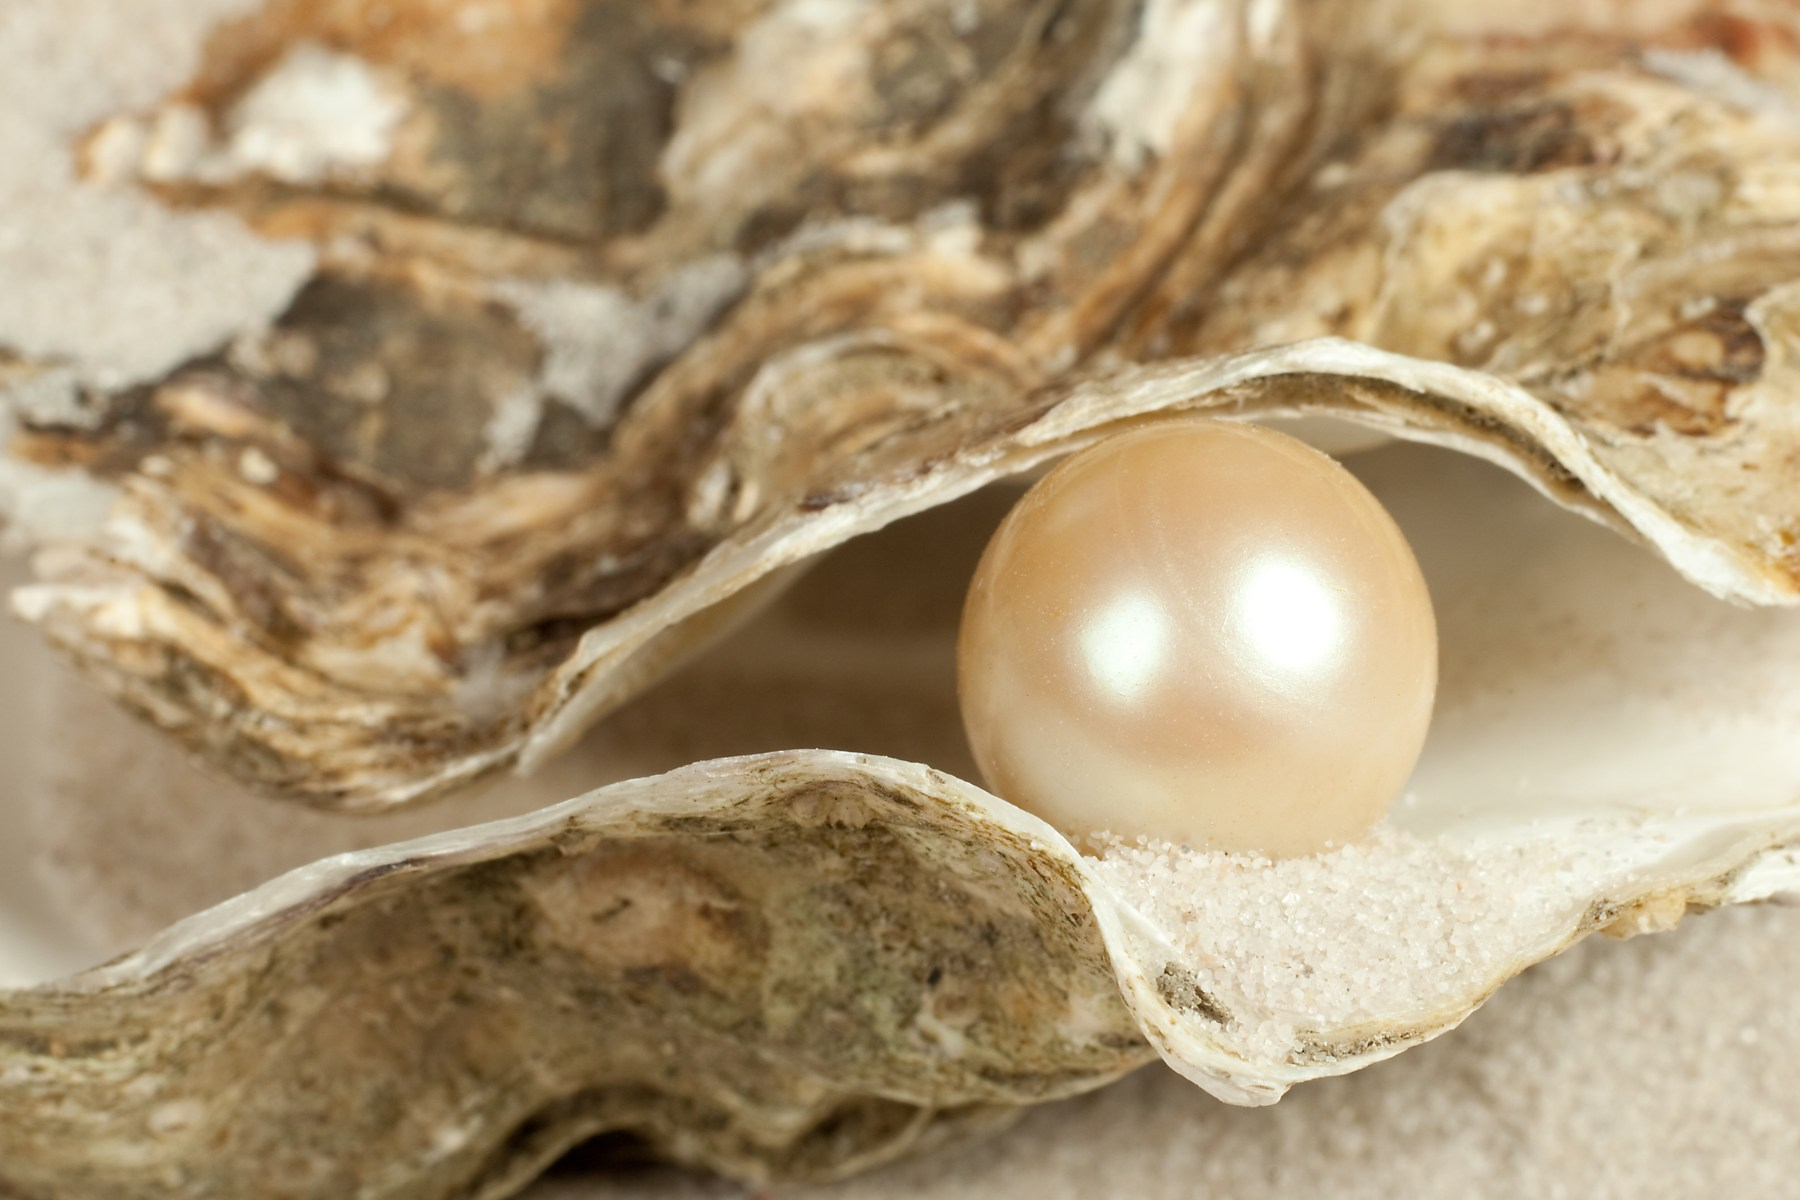 pearl wisdom (pearl in oyster)